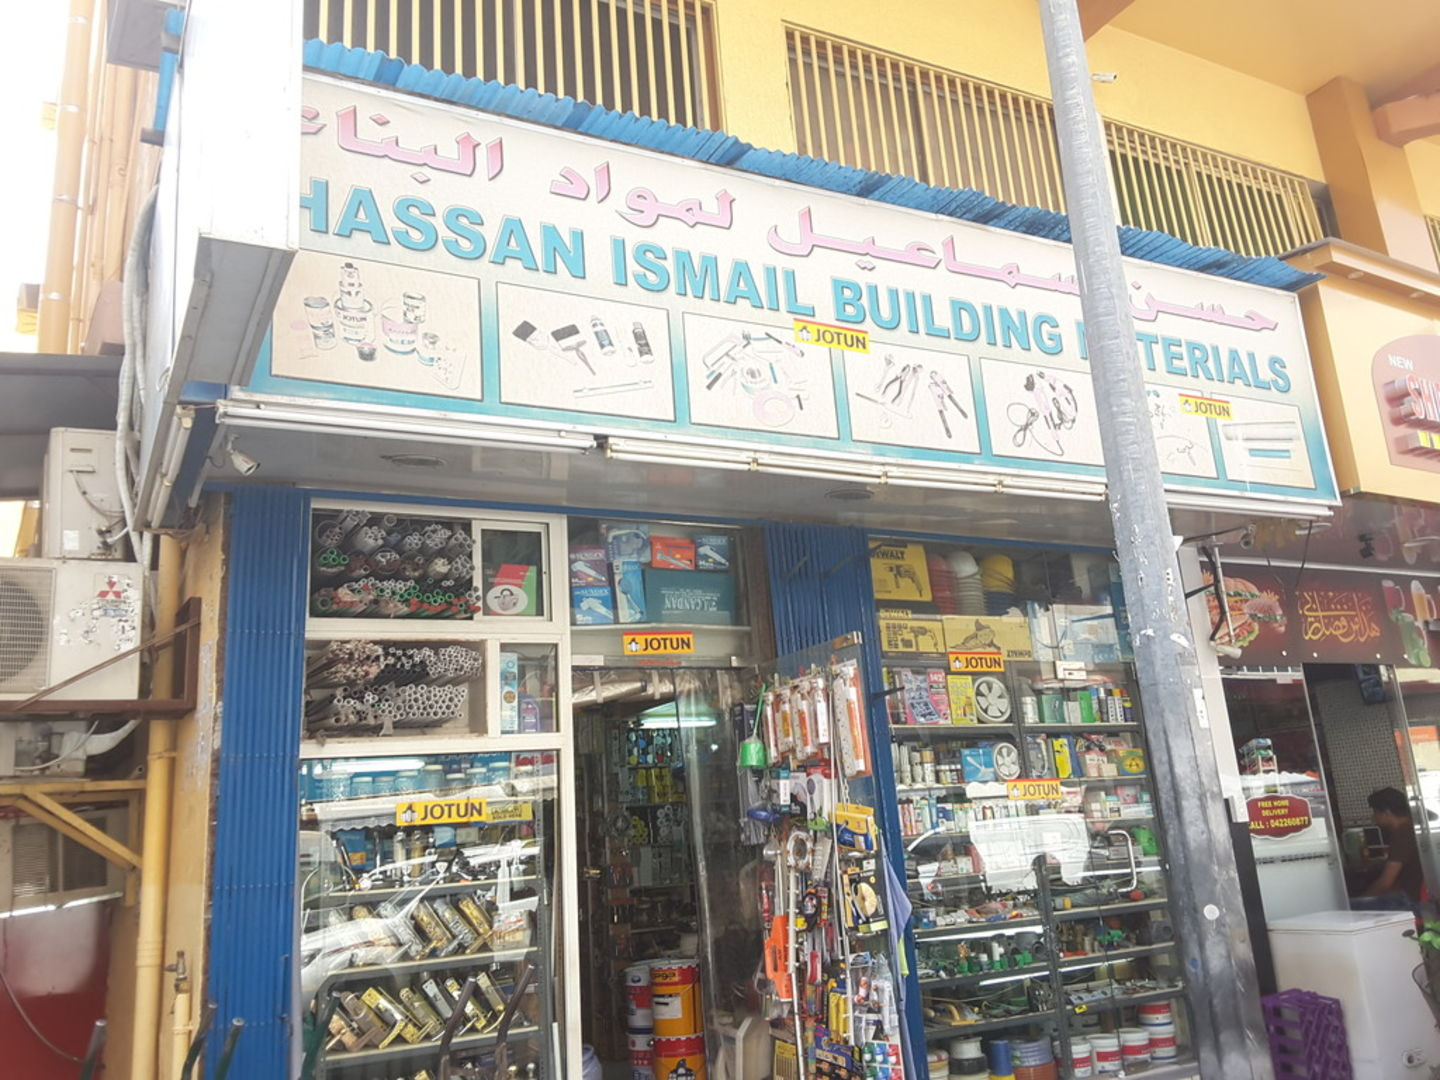 Hassan Ismail Building Materials, (Hardware & Fittings) in